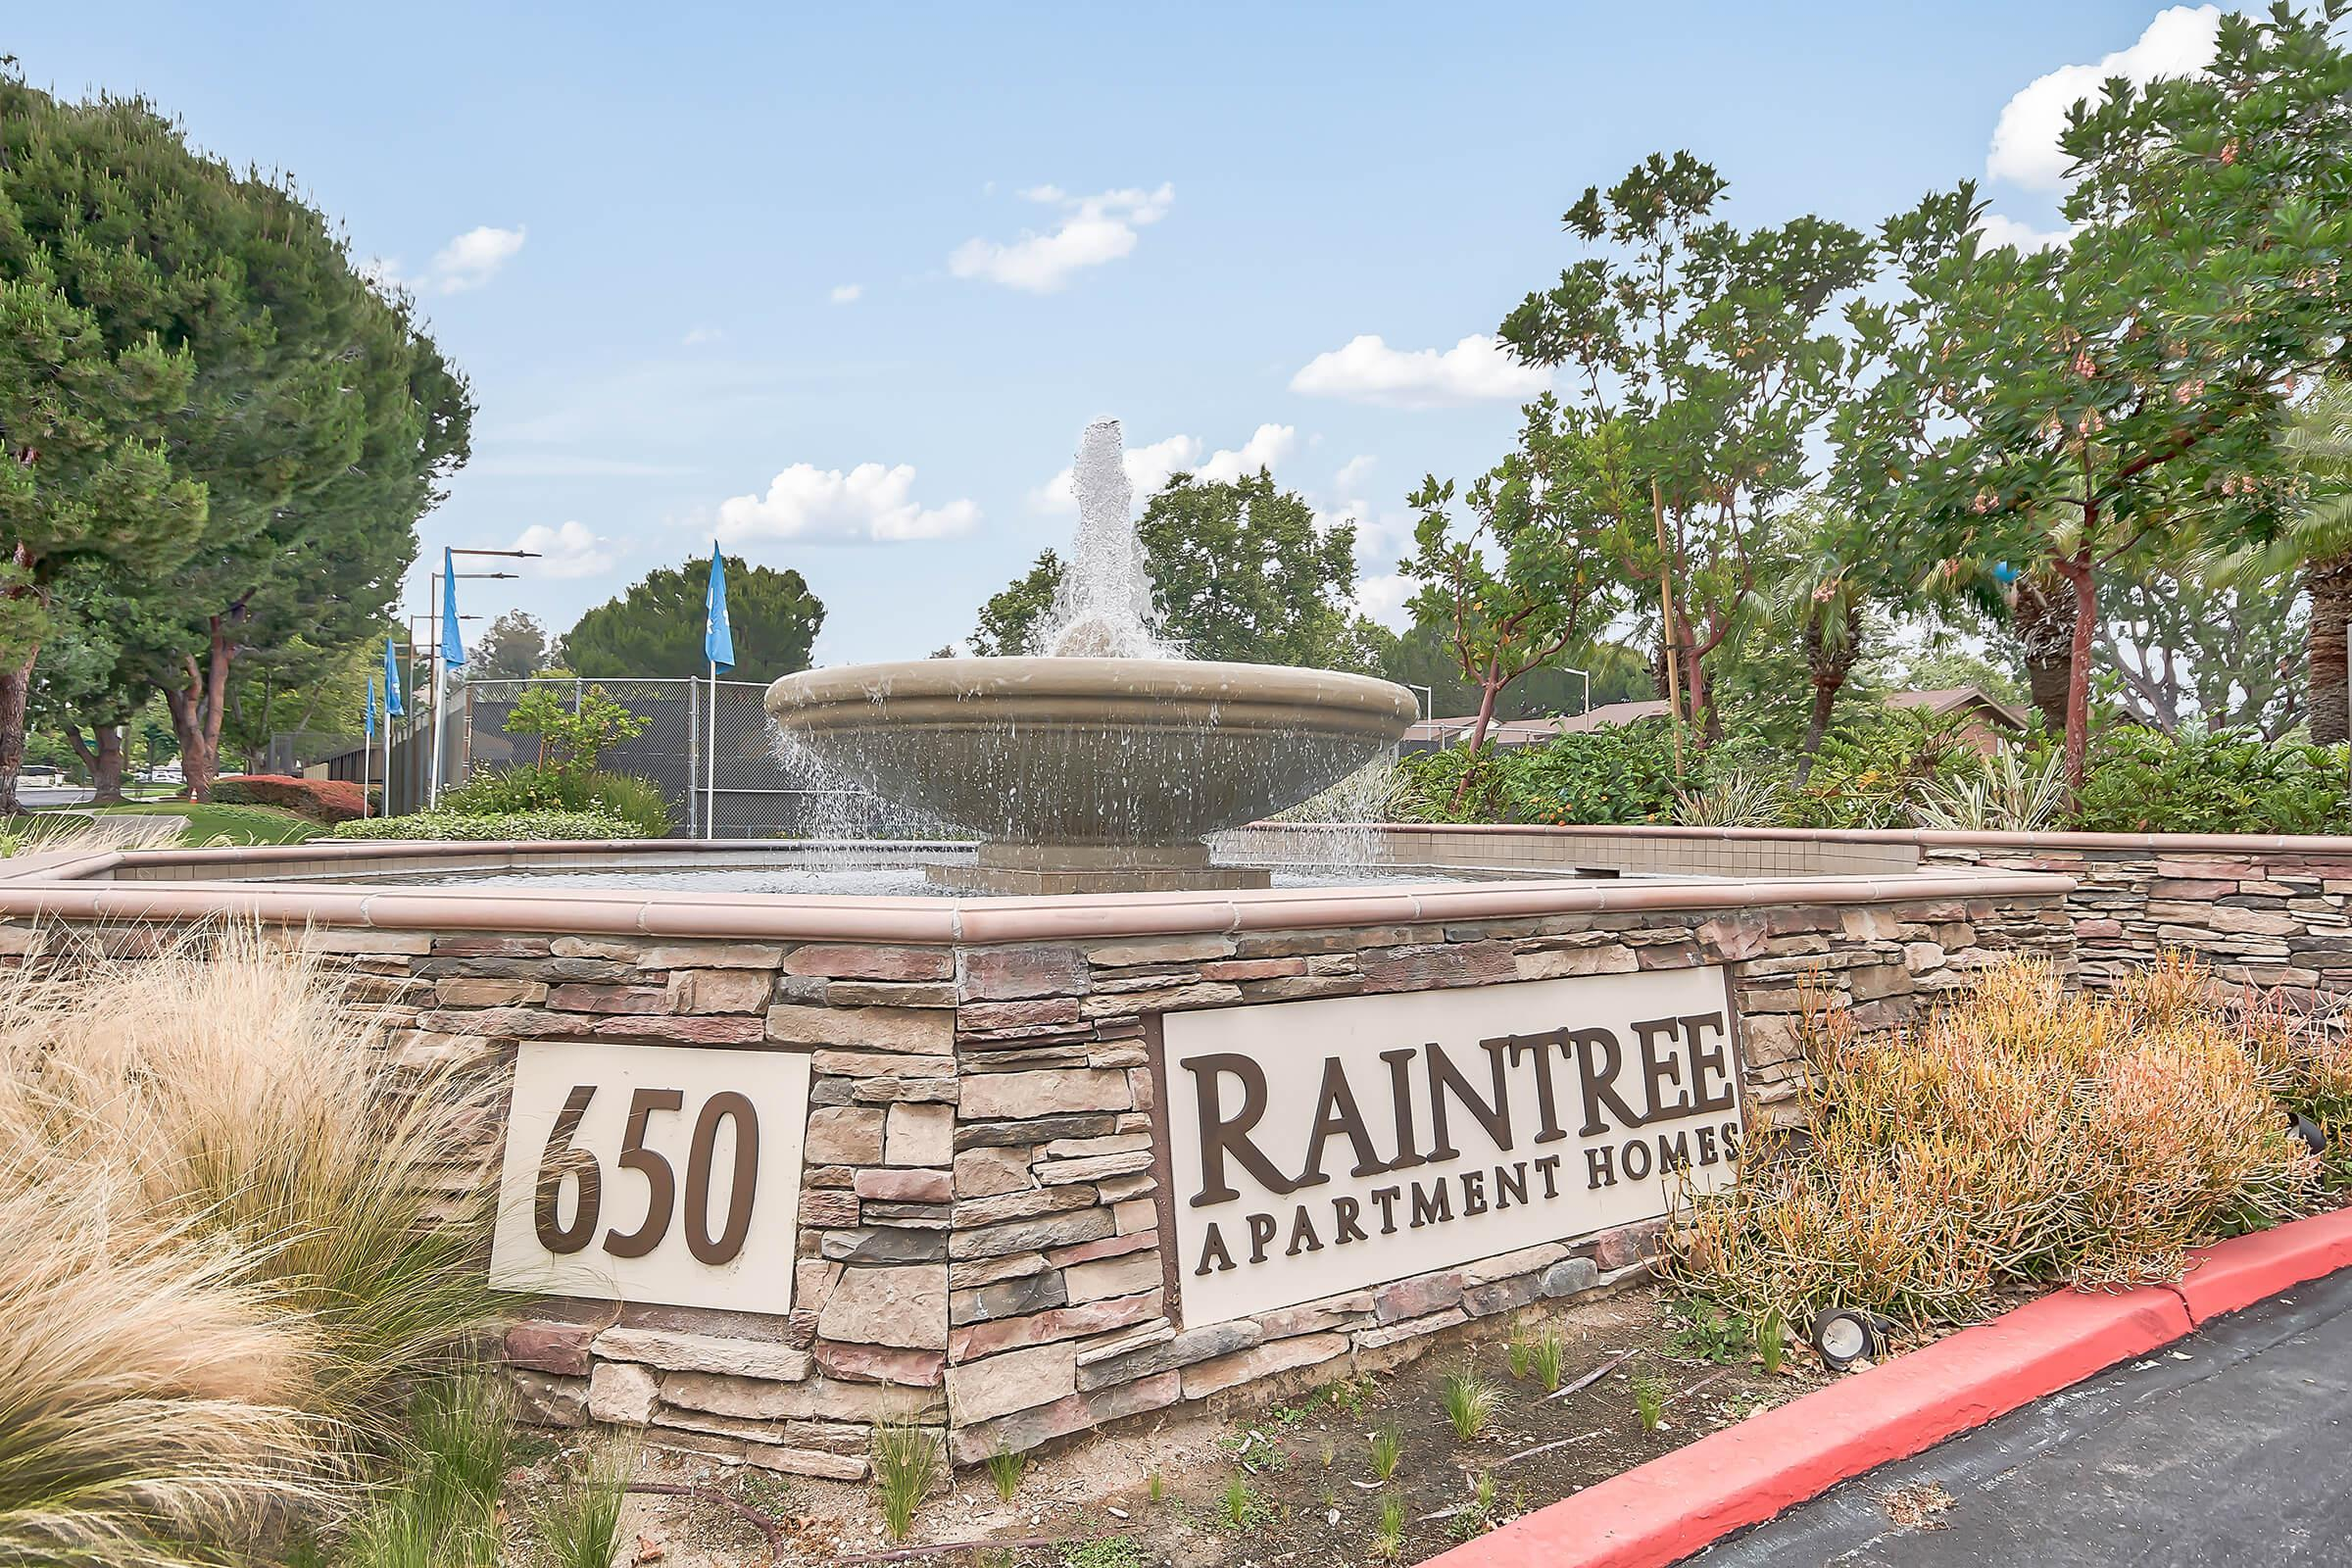 Raintree Apartment Homes monument sign with water feature